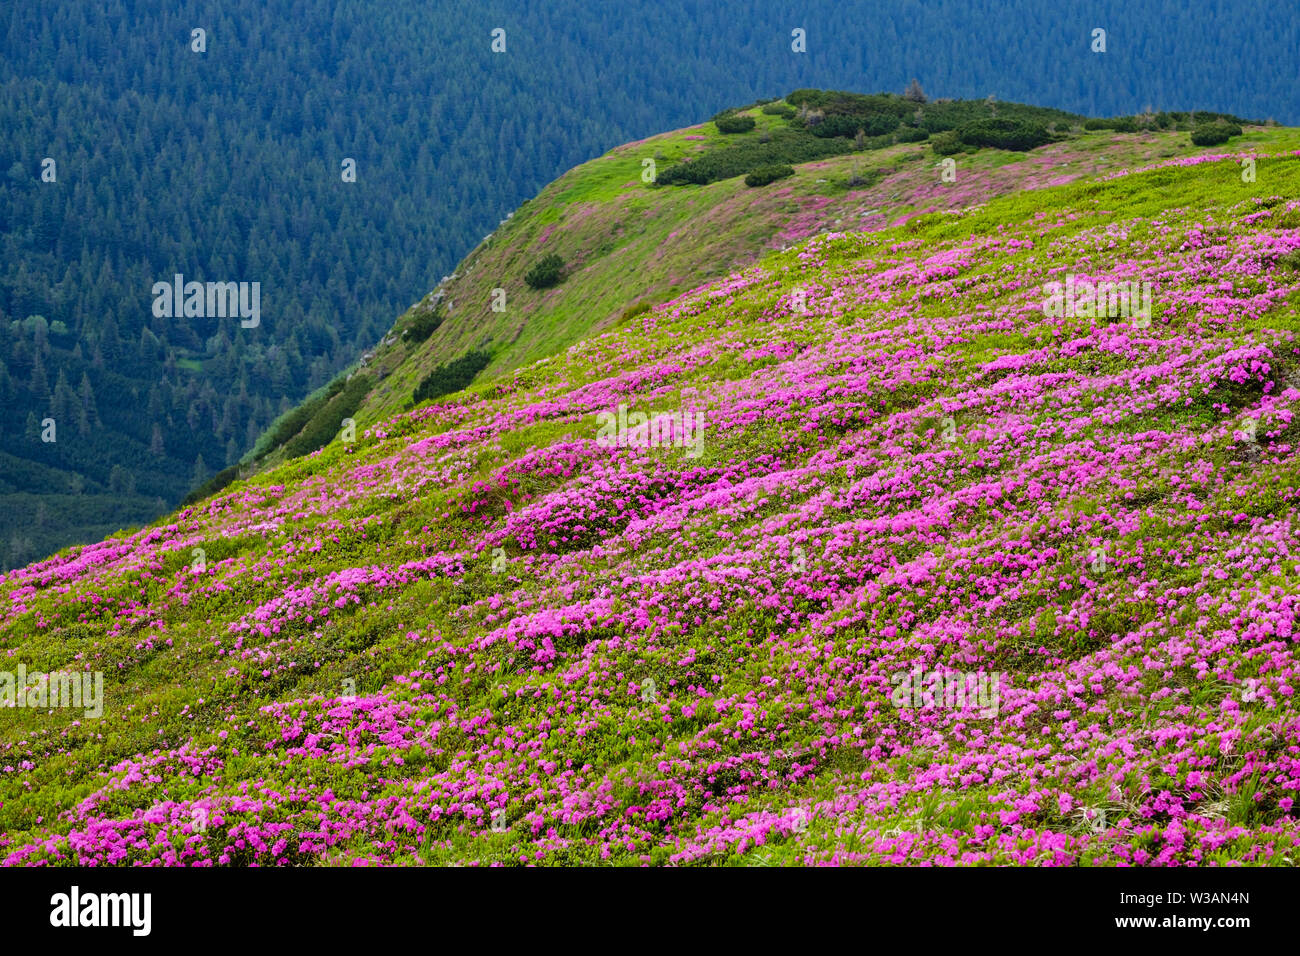 Pink rose rhododendron flowers (in front) on summer evening mountain slope. Carpathian, Chornohora, Ukraine. - Stock Image